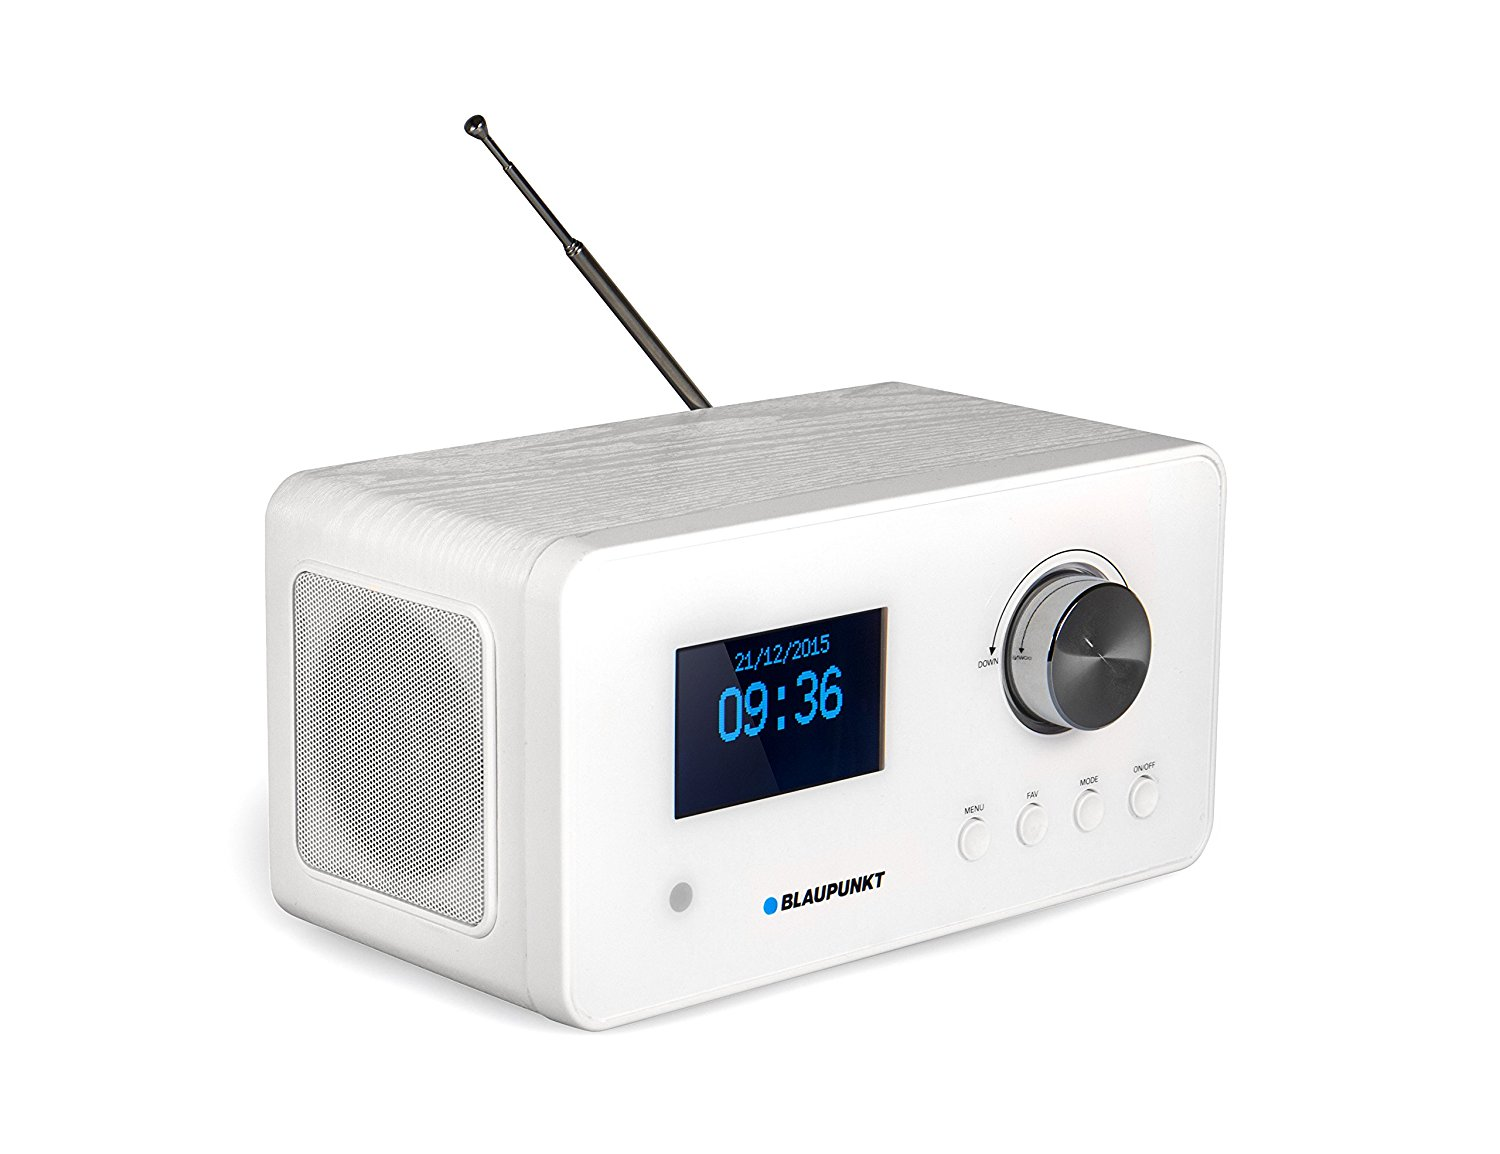 Internetradio Küchenradio Blaupunkt Ird 30 Internetradio Dab Digitalradio Wecker